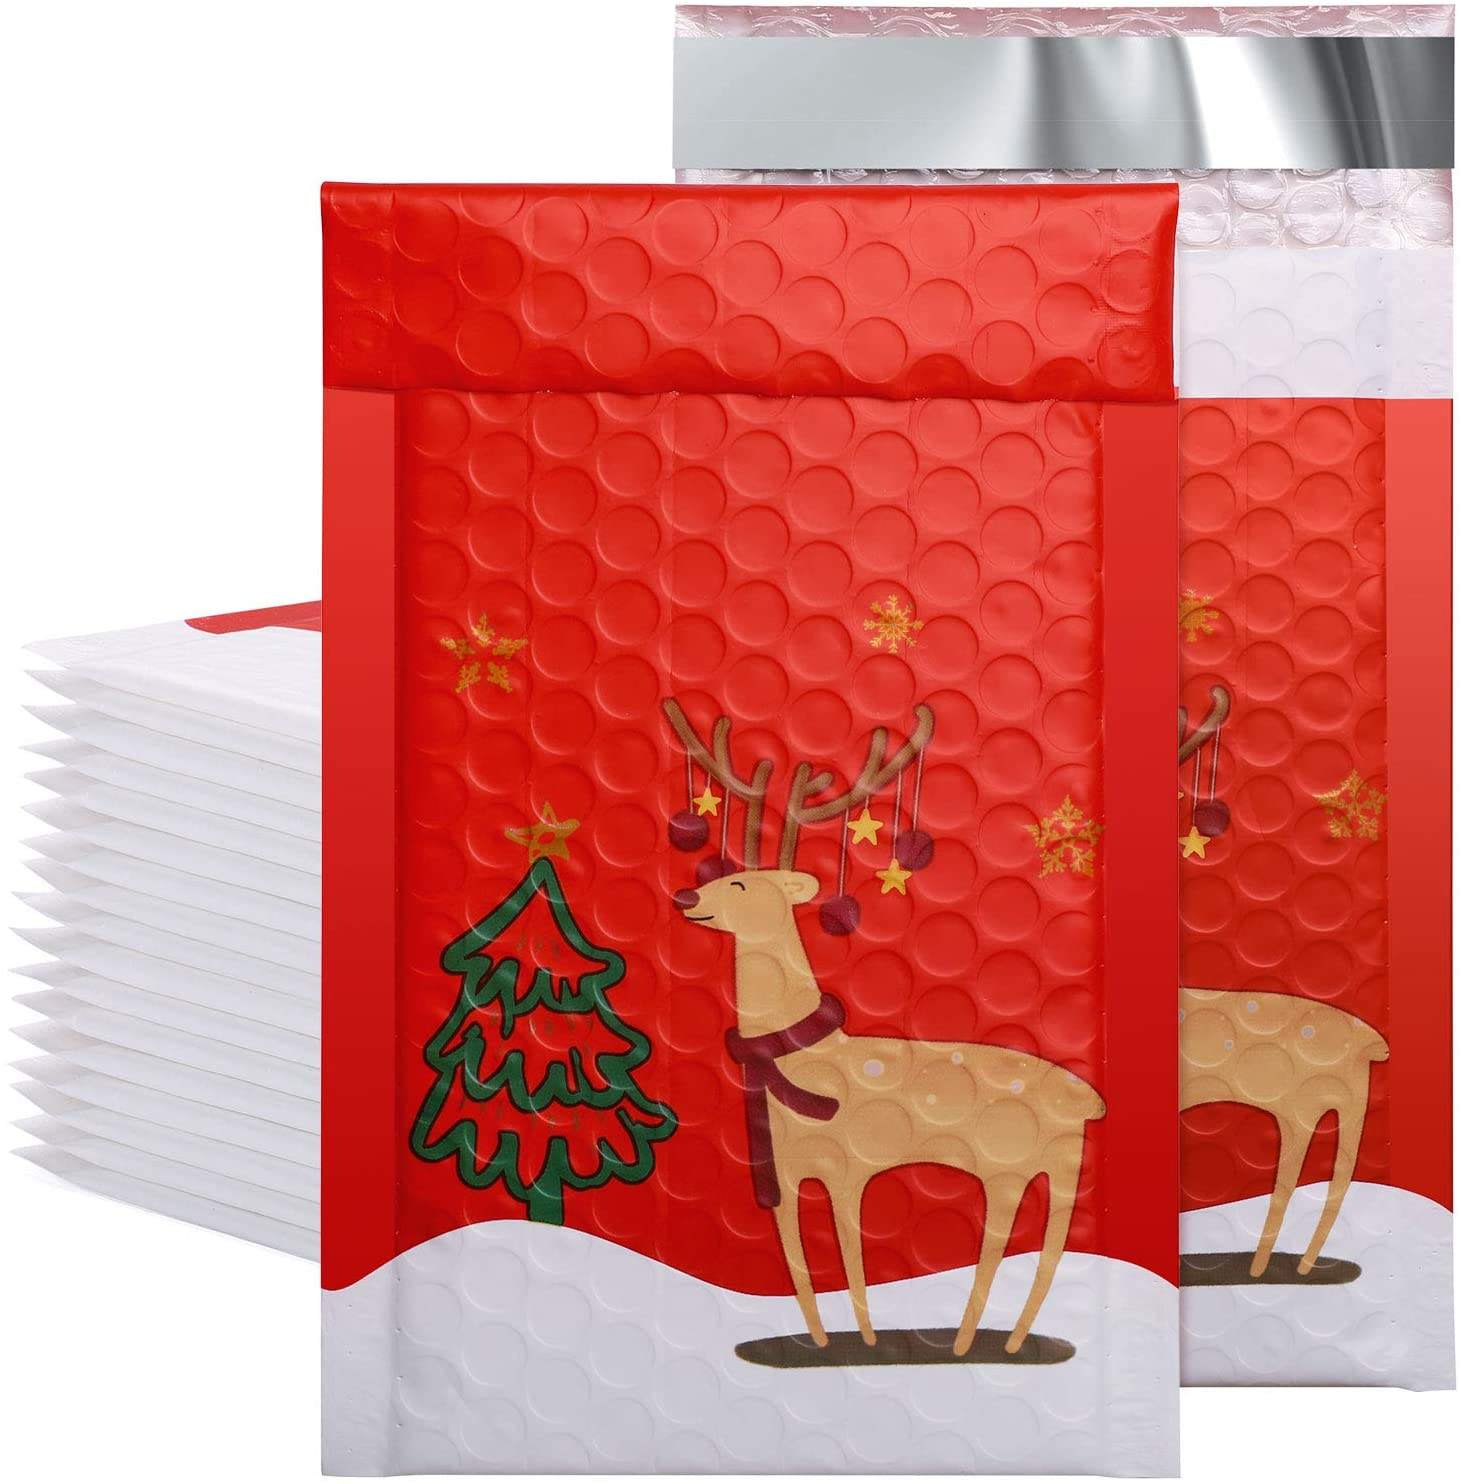 Heavy Duty Quality Customized Christmas Card Mailer Creative Christmas Mailer in Many Sizes for Any Holiday Occasion